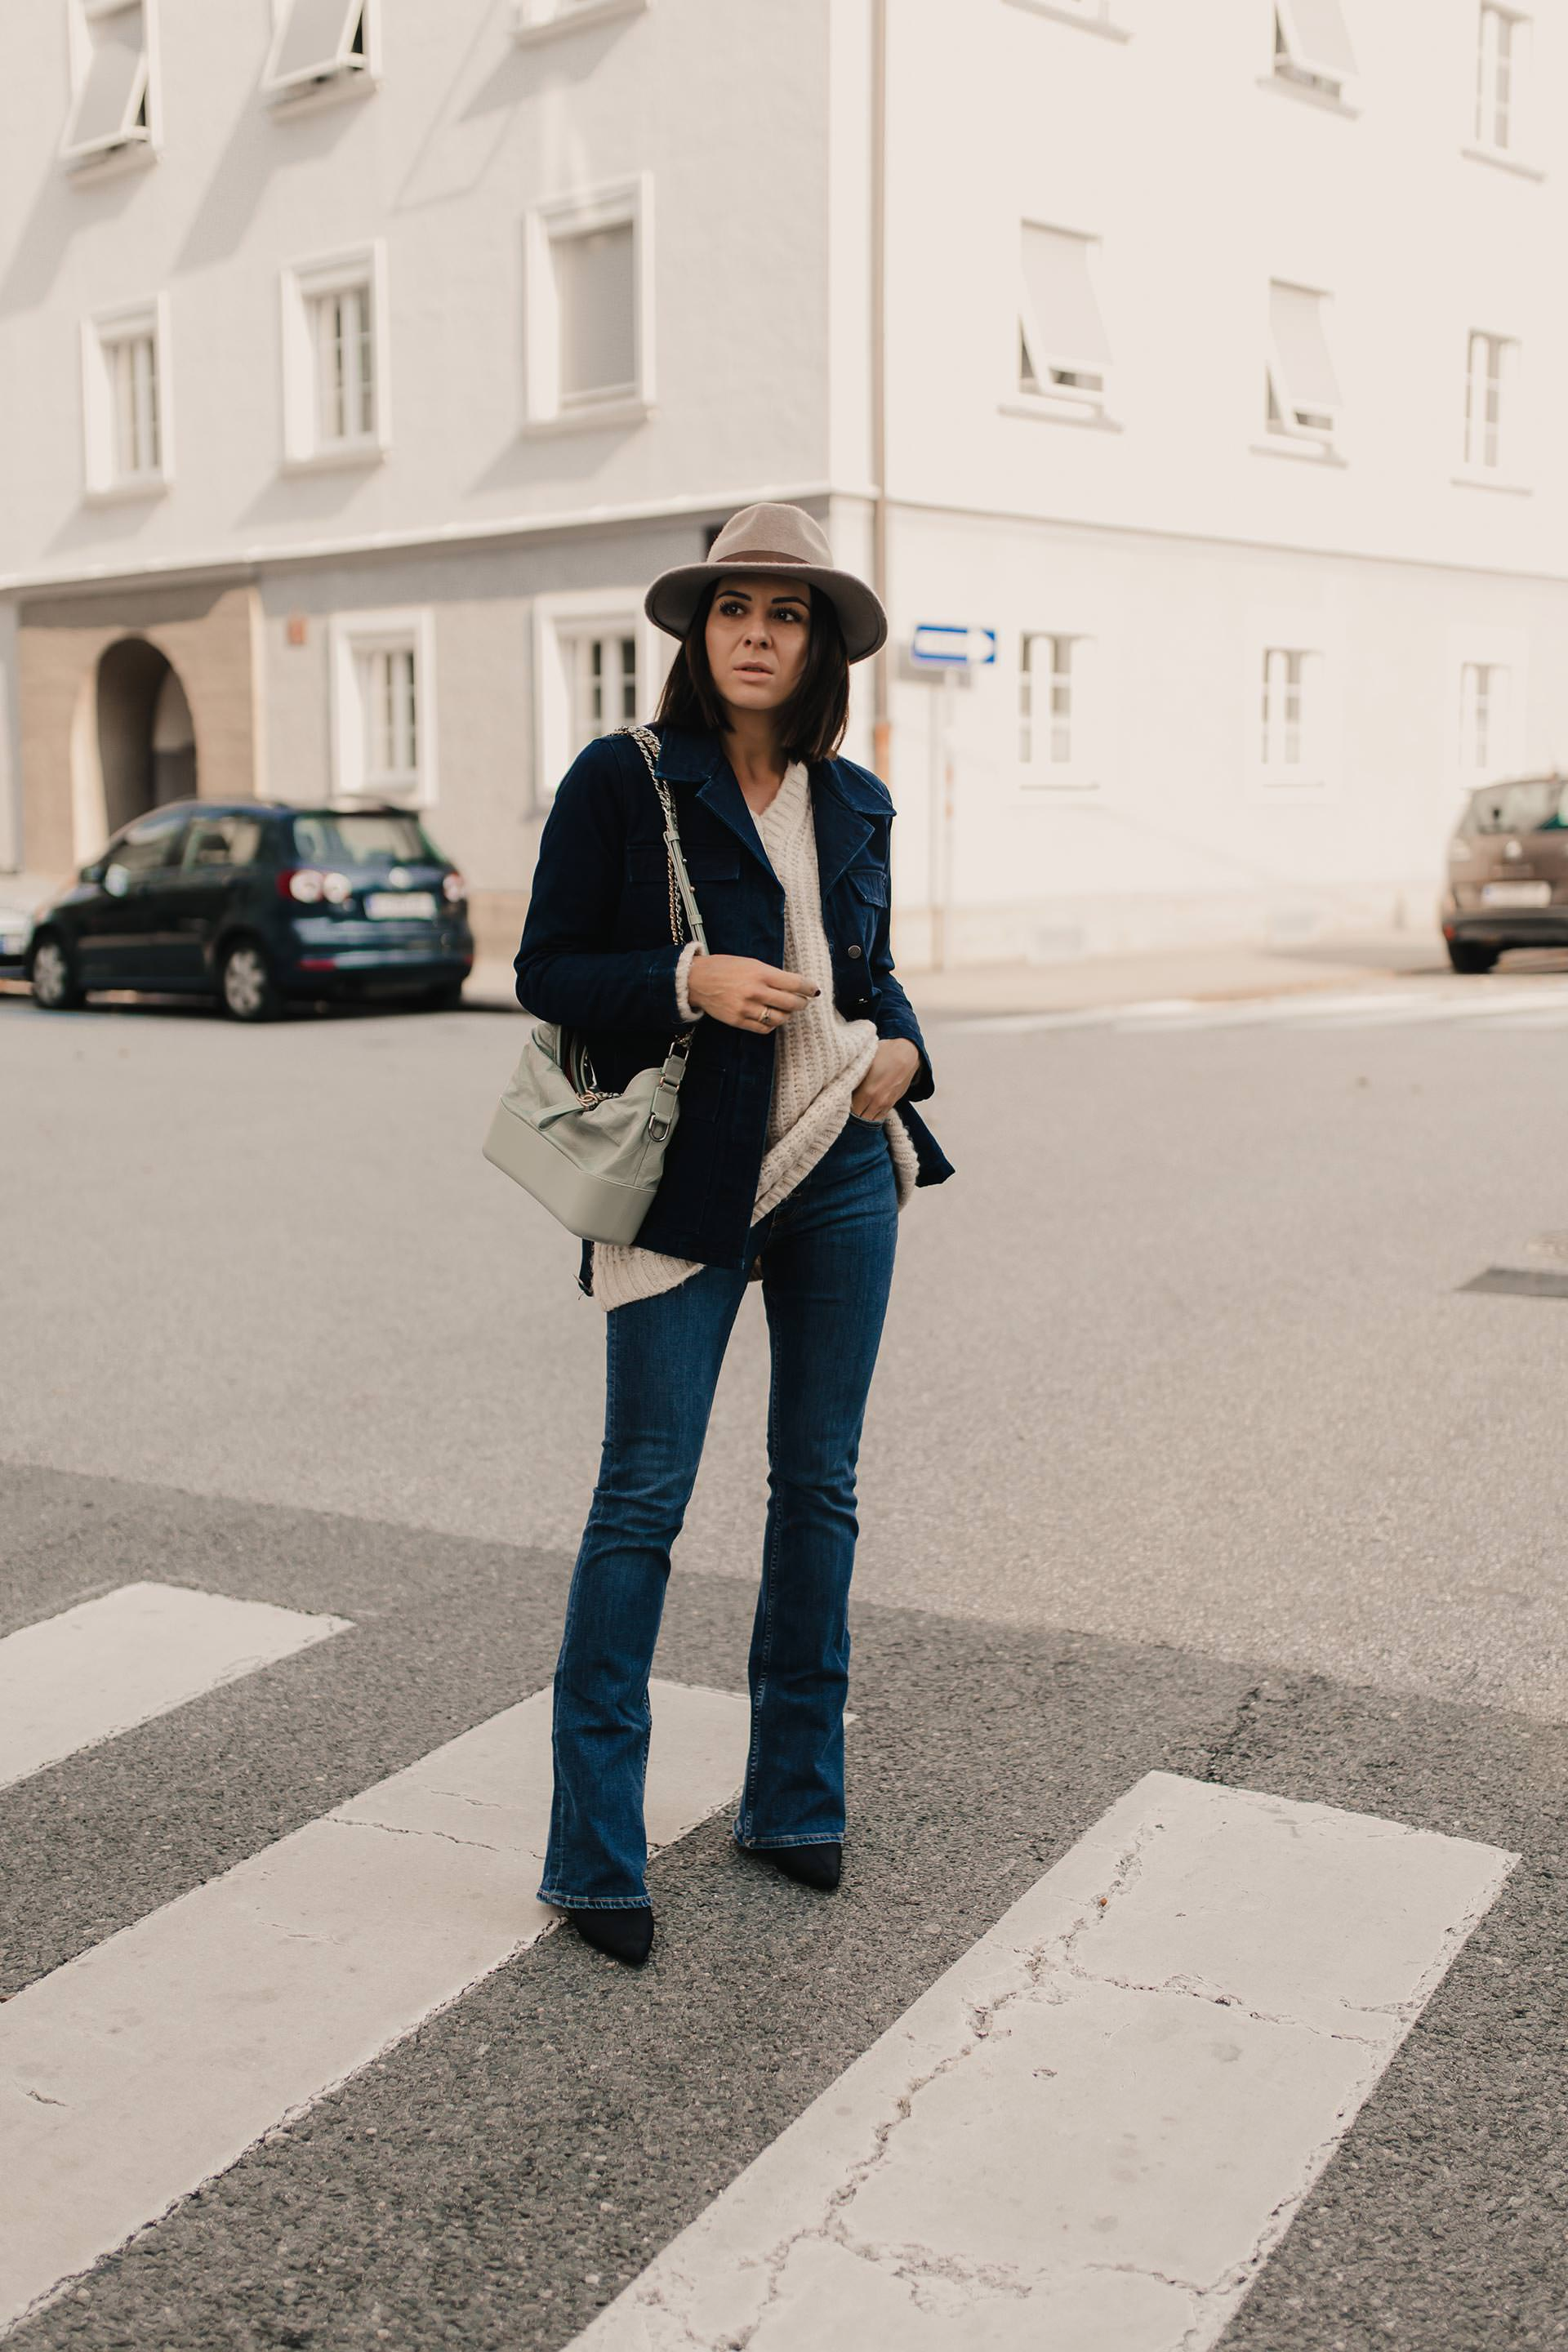 enthält unbeauftragte Werbung. flared jeans kombinieren, flared jeans, flared jeans outfit, bootcut jeans kombinieren, outfit bootcut jeans, bootcut jeans stylen, Herbst Outfit, denim on denim, denim outfit, outfit mit jeansjacke, chanel gabrielle tasche, Modeblogger, Modetrends, www.whoismocca.com #flaredjeans #herbsttrends #outfit #denimondenim #gabrielle #chanel